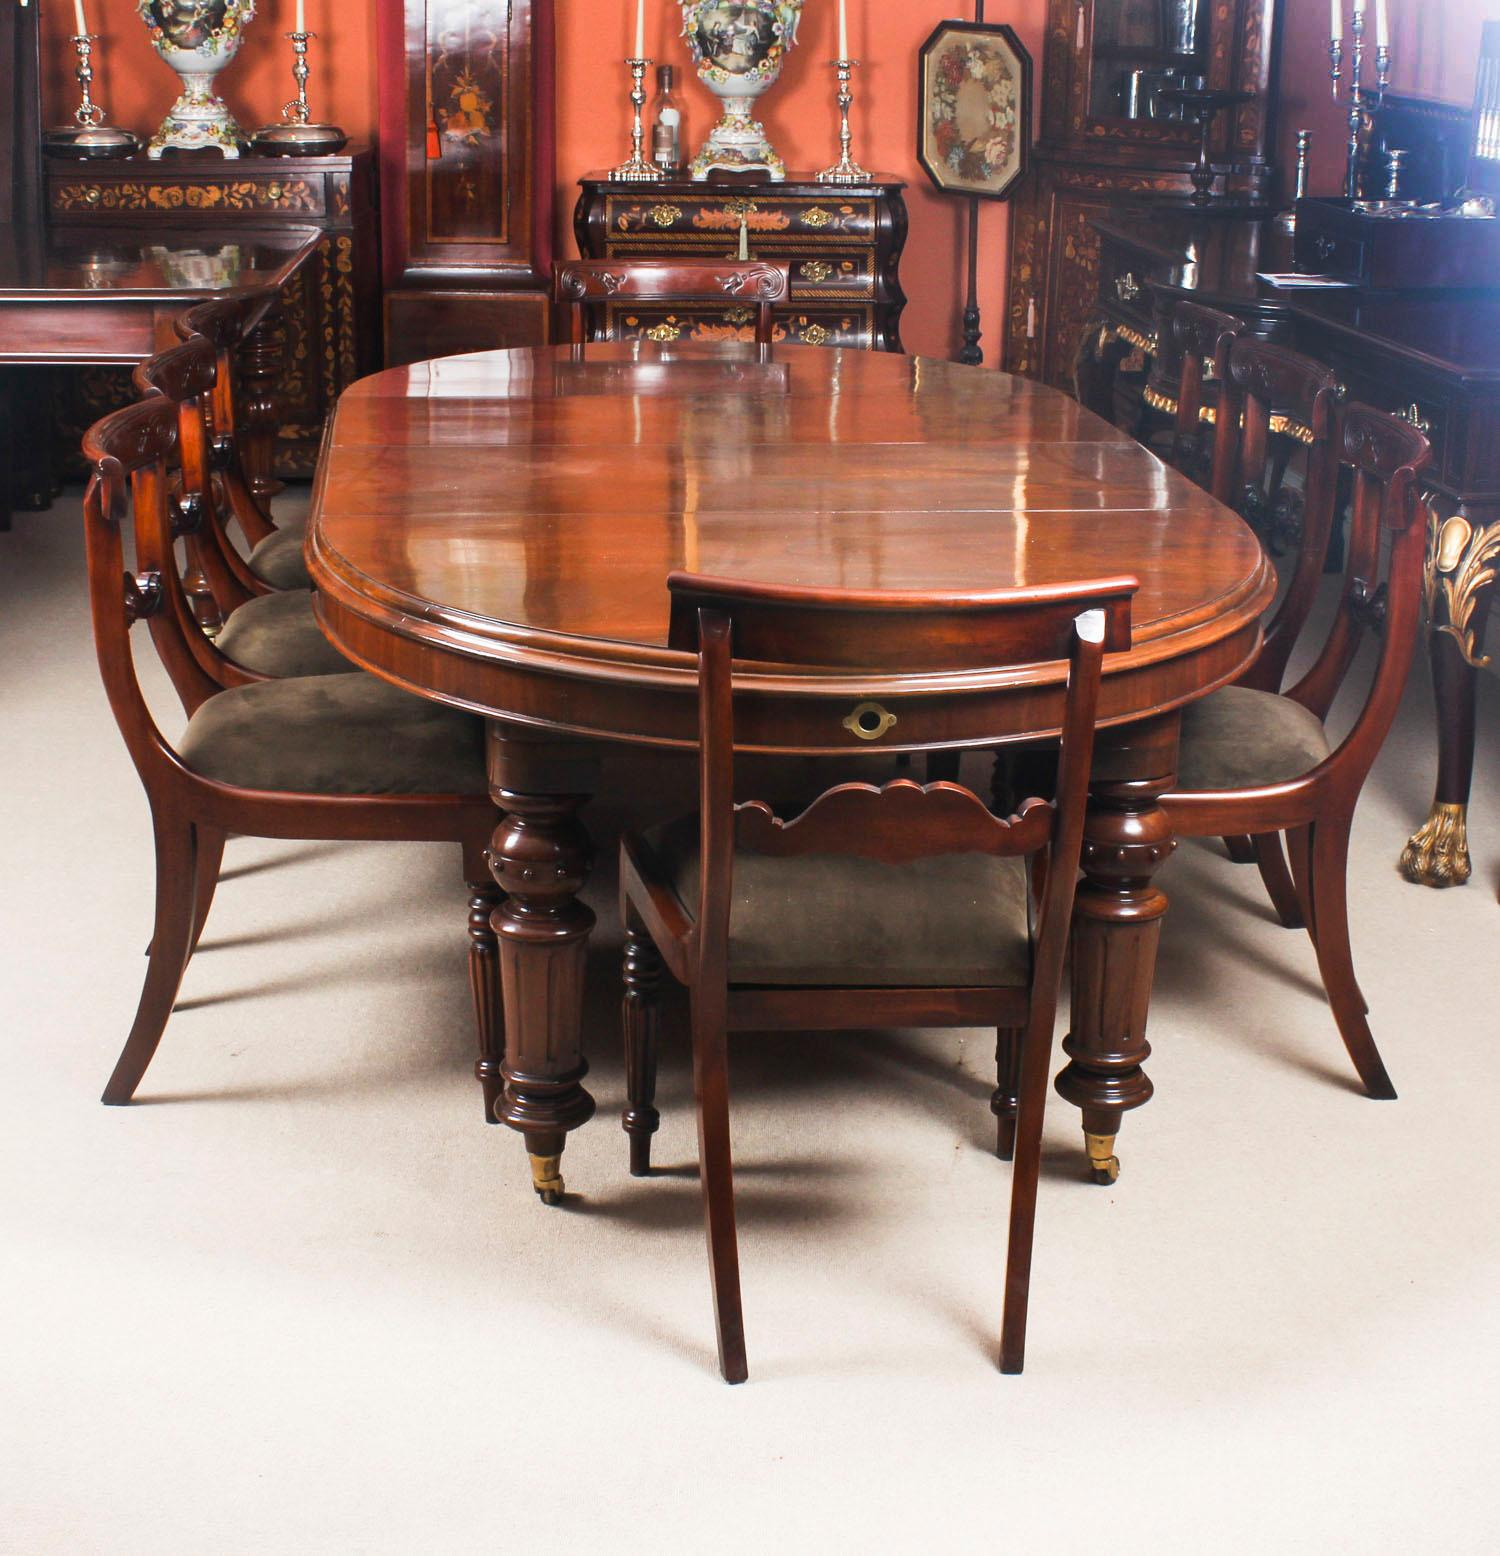 Delicieux Antique Victorian Oval Dining Table 19th Century And 8 Bar Back Dining  Chairs